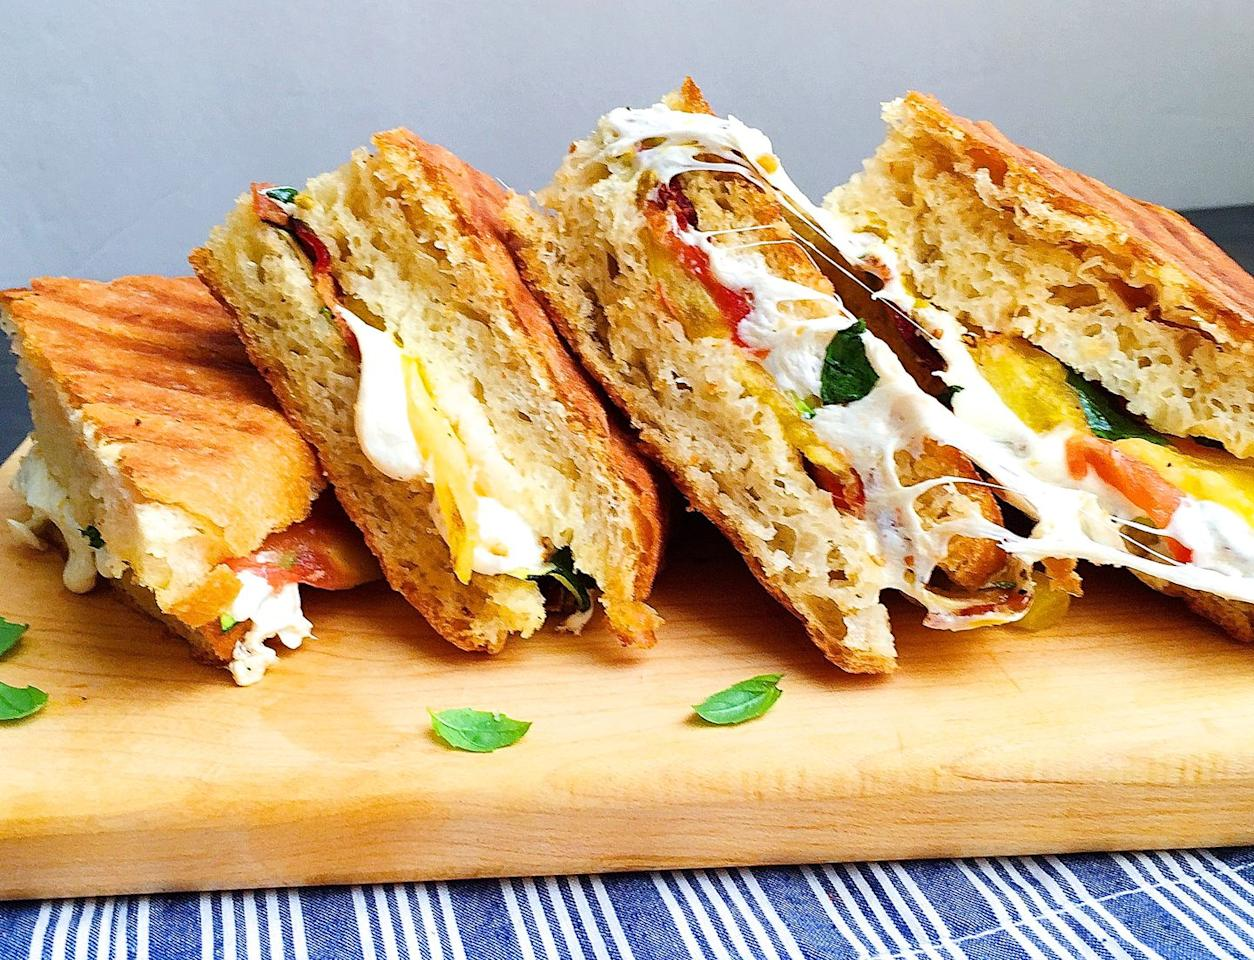 """<p>BZT is the new BLT.</p><p>Get the recipe from <a rel=""""nofollow"""" href=""""https://www.delish.com/cooking/recipe-ideas/recipes/a43496/bzt-panini-recipe/"""">Delish</a>.<br></p><p><a rel=""""nofollow"""" href=""""http://www.countryliving.com/food-drinks/recipes/a24613/grilled-vegetable-sandwiches-recipe-rbk1010/""""></a></p>"""